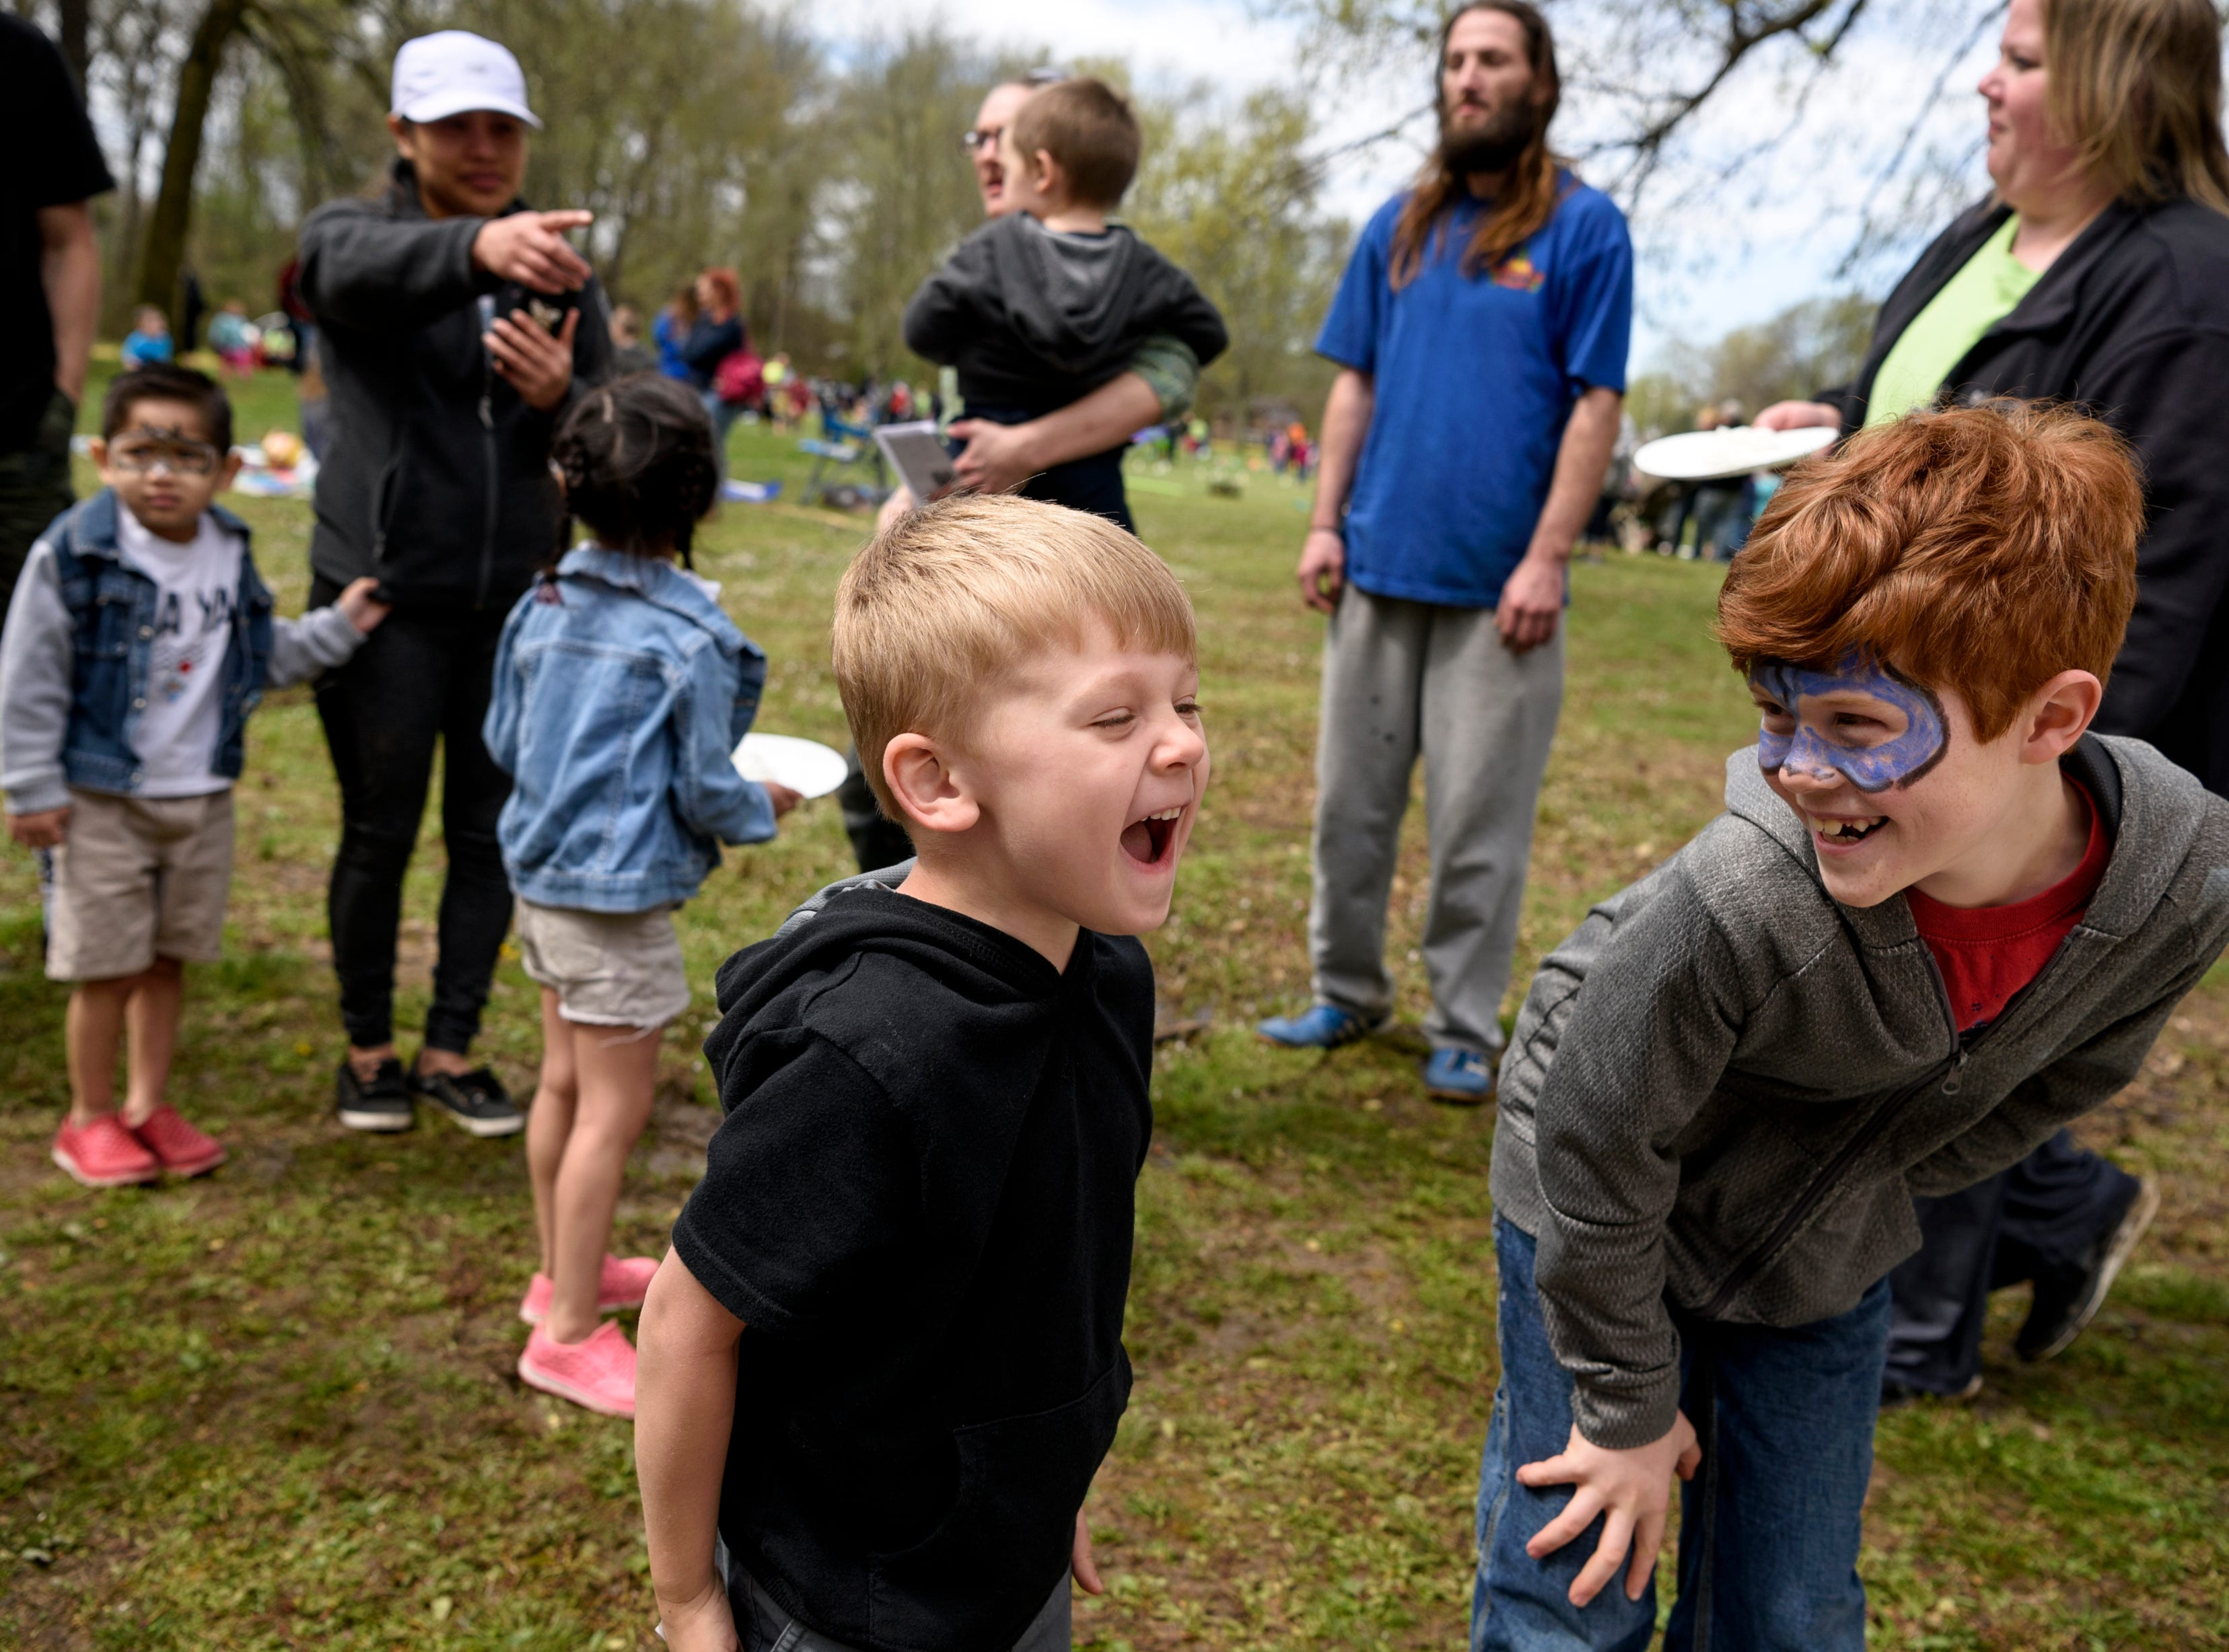 Theo Stewart reacts to throwing a plate of whipped cream in Billie Walker's face, not pictured, with the help of Walker's son Alton Deig, 10, right, during the annual Family Fun Day for the Community Action Program of Evansville & Vanderburgh County, Inc. (CAPE) at Wesselman Park in Evansville, Ind., Friday, April 12, 2019. CAPE employees, like Walker, volunteered to have whipped cream smushed into their faces to raise money for the organization.